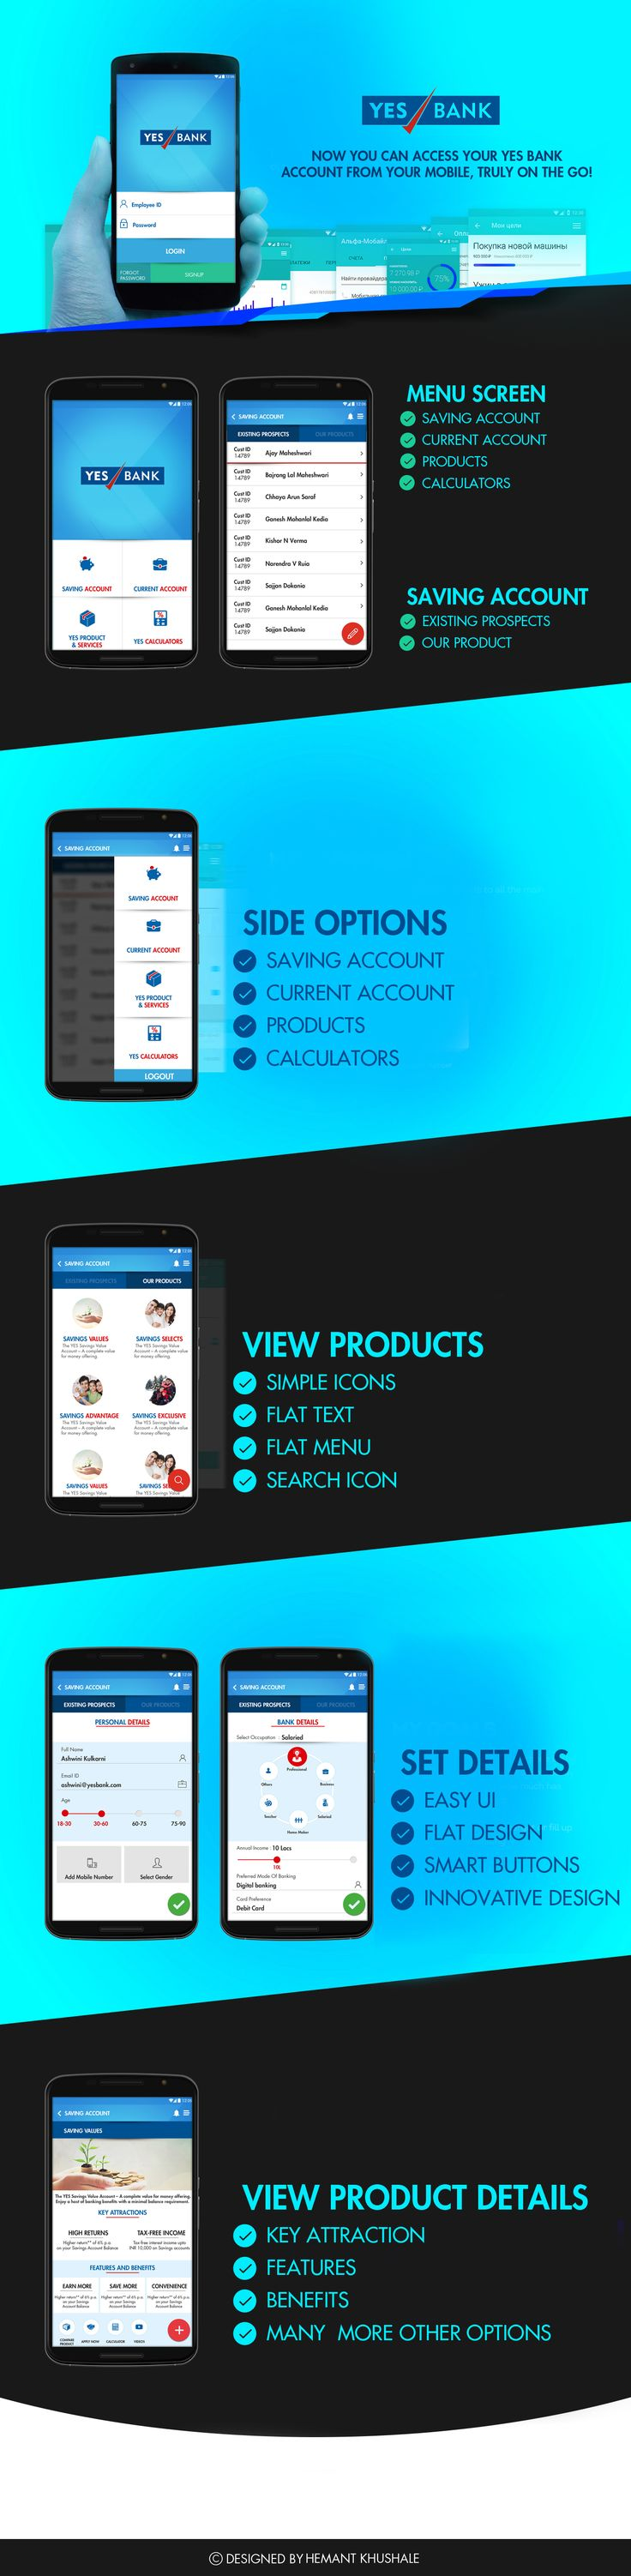 """Check out my @Behance project: """"YES BANK APP"""" https://www.behance.net/gallery/47539099/YES-BANK-APP"""